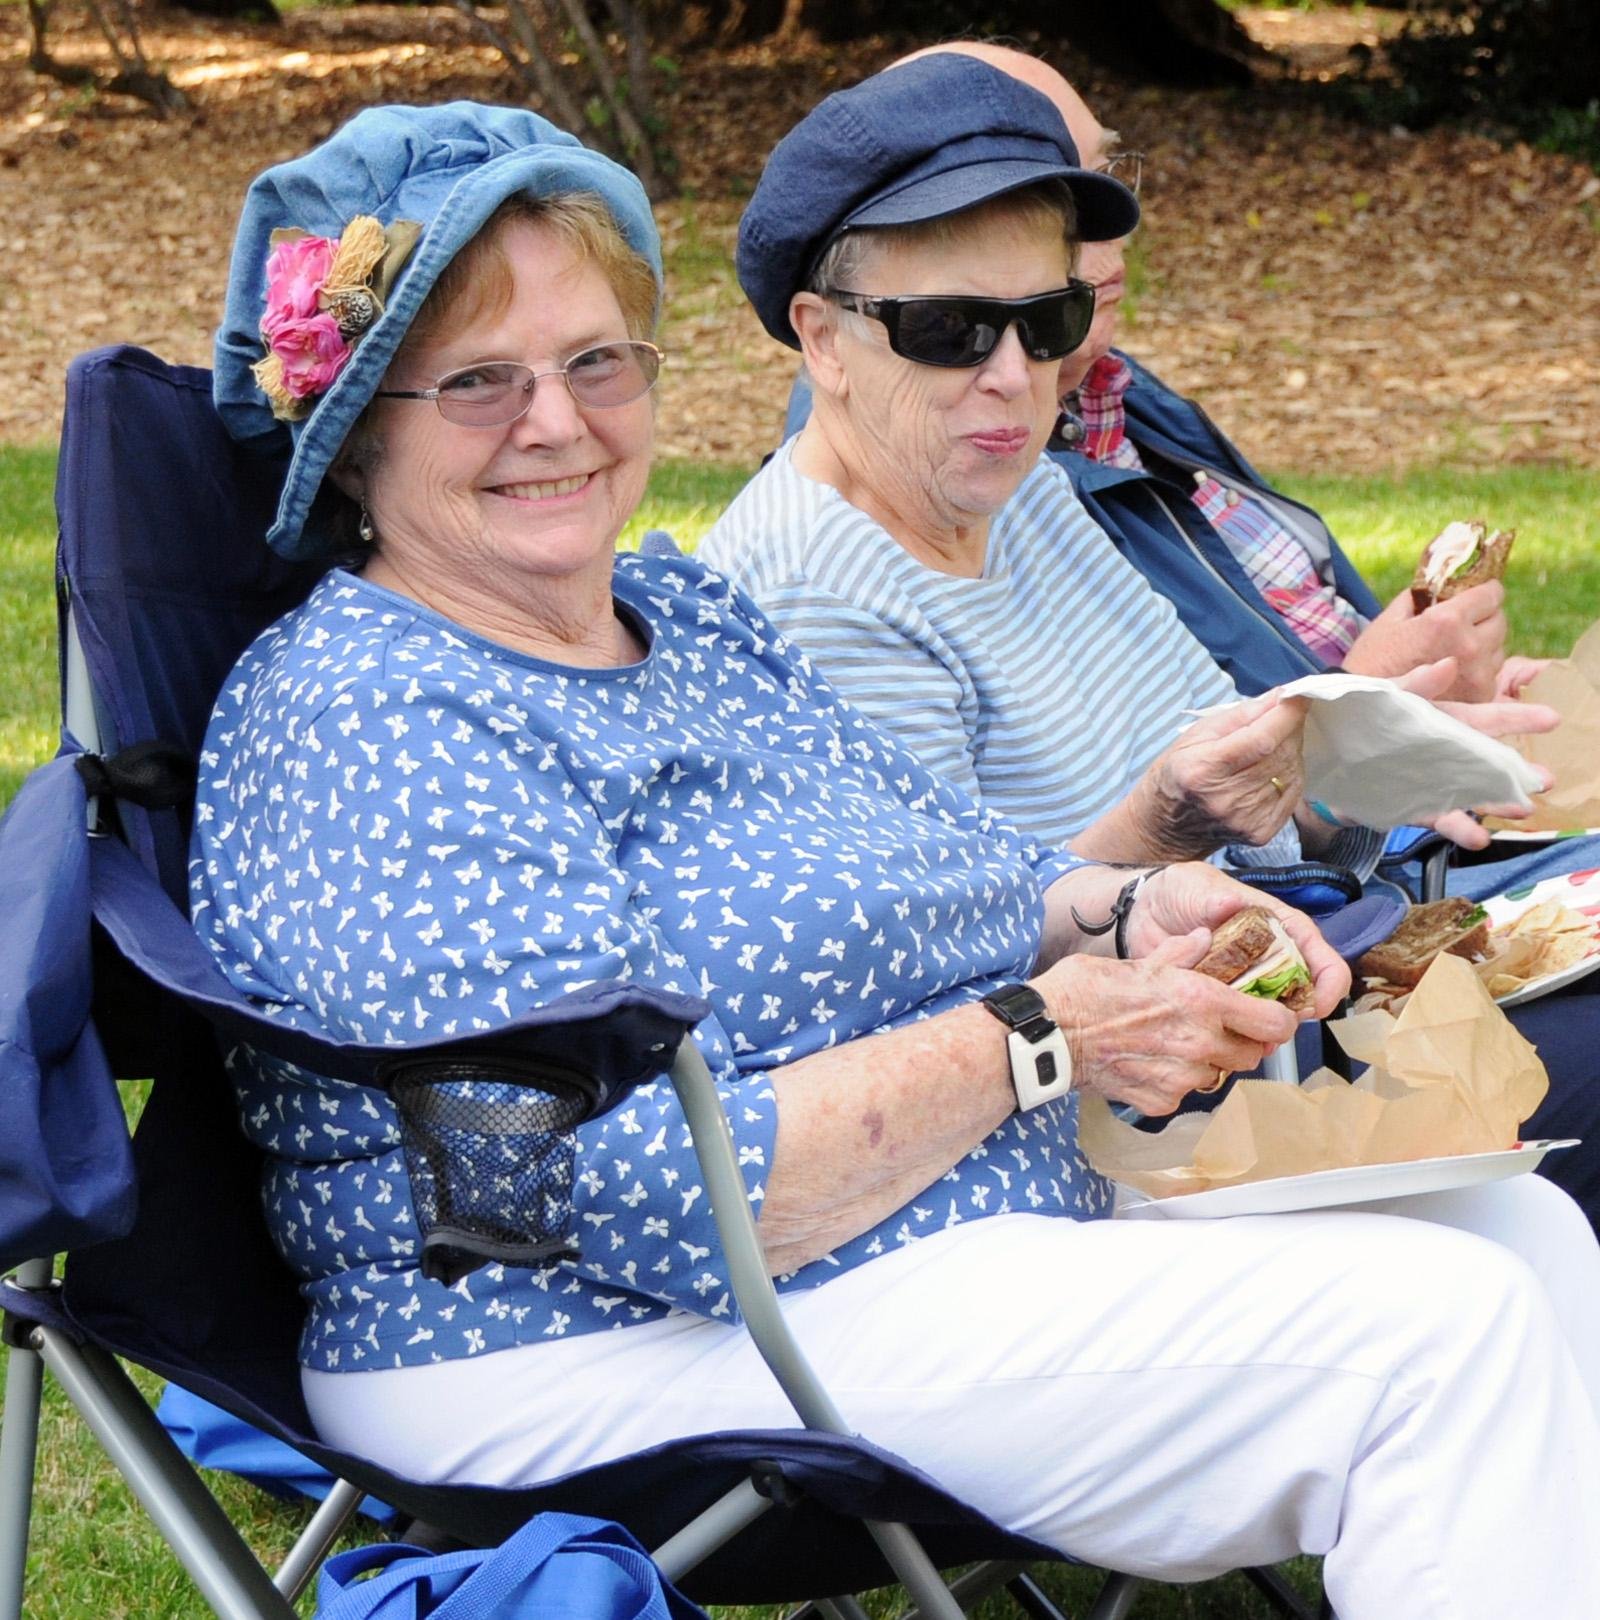 Many concert-goers bring a picnic to enjoy, like these Ashland City Band fans Dorothy Canfield (left) and Kathy Dewitt. (Photo by Jim Flint)